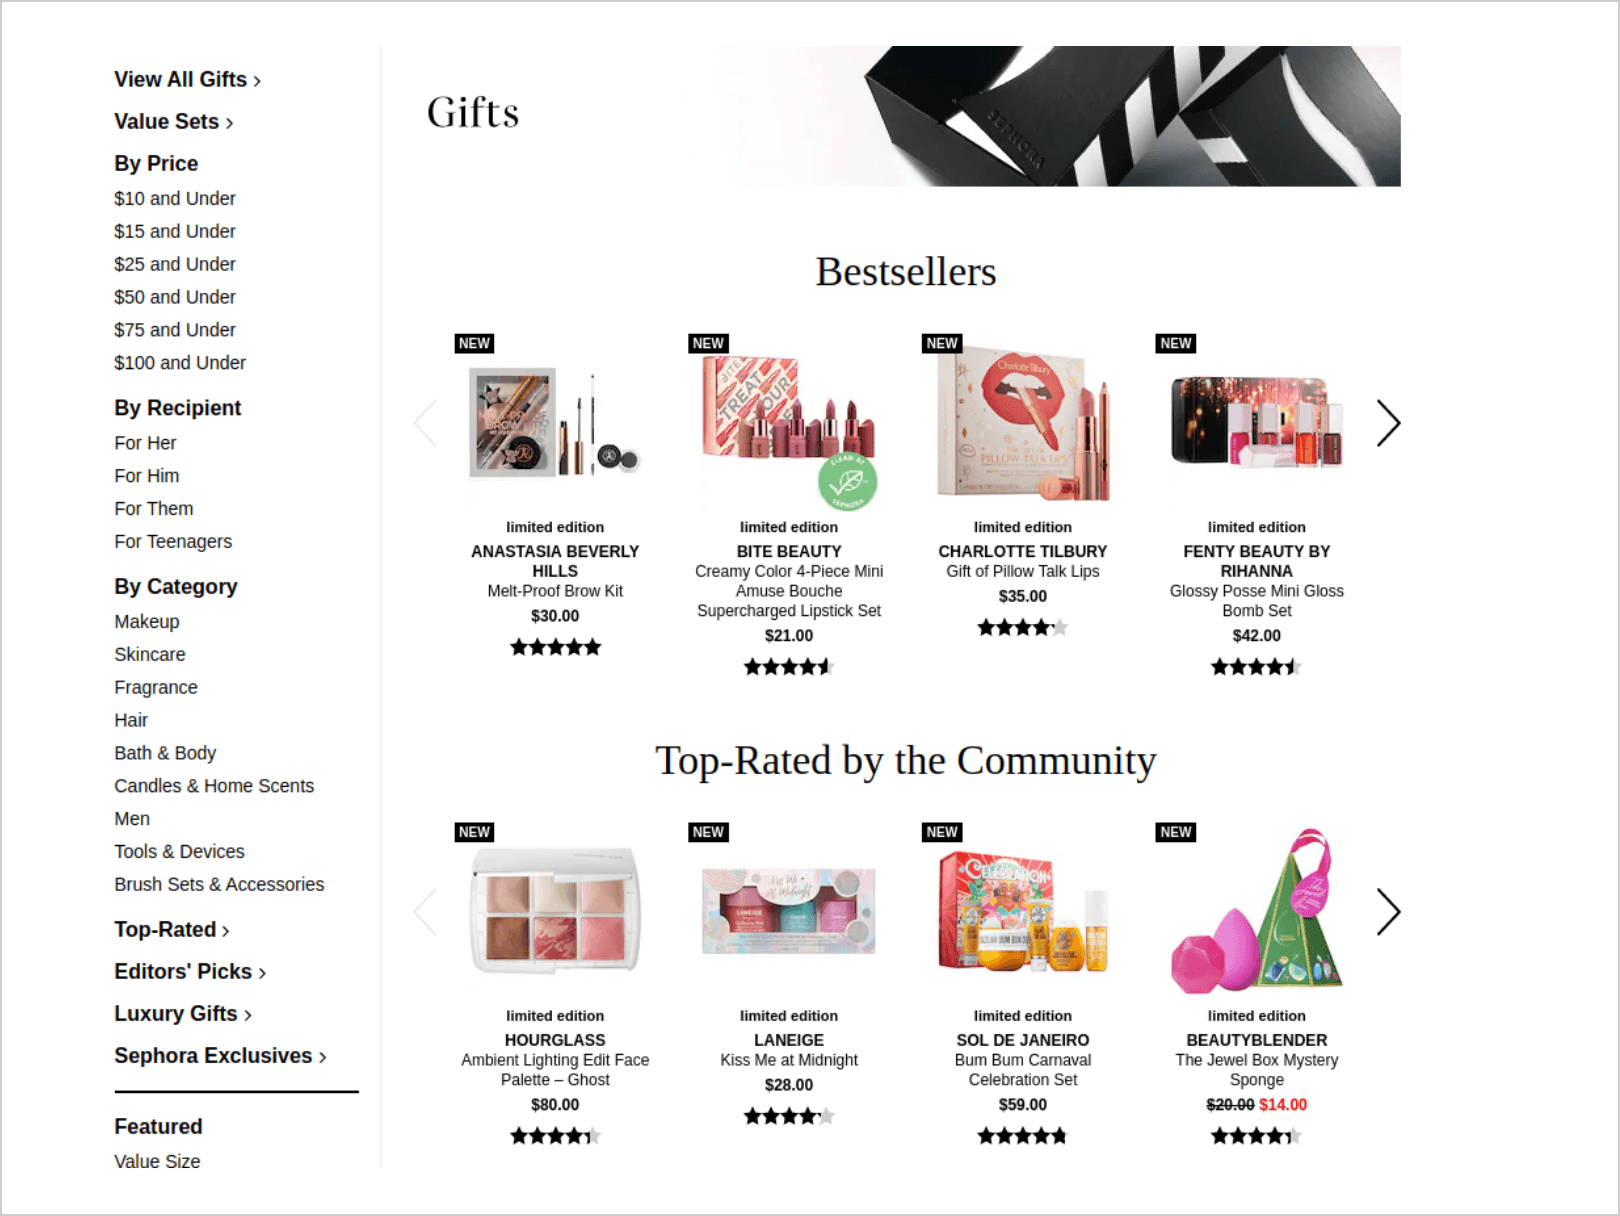 Bestsellers and top-rated products